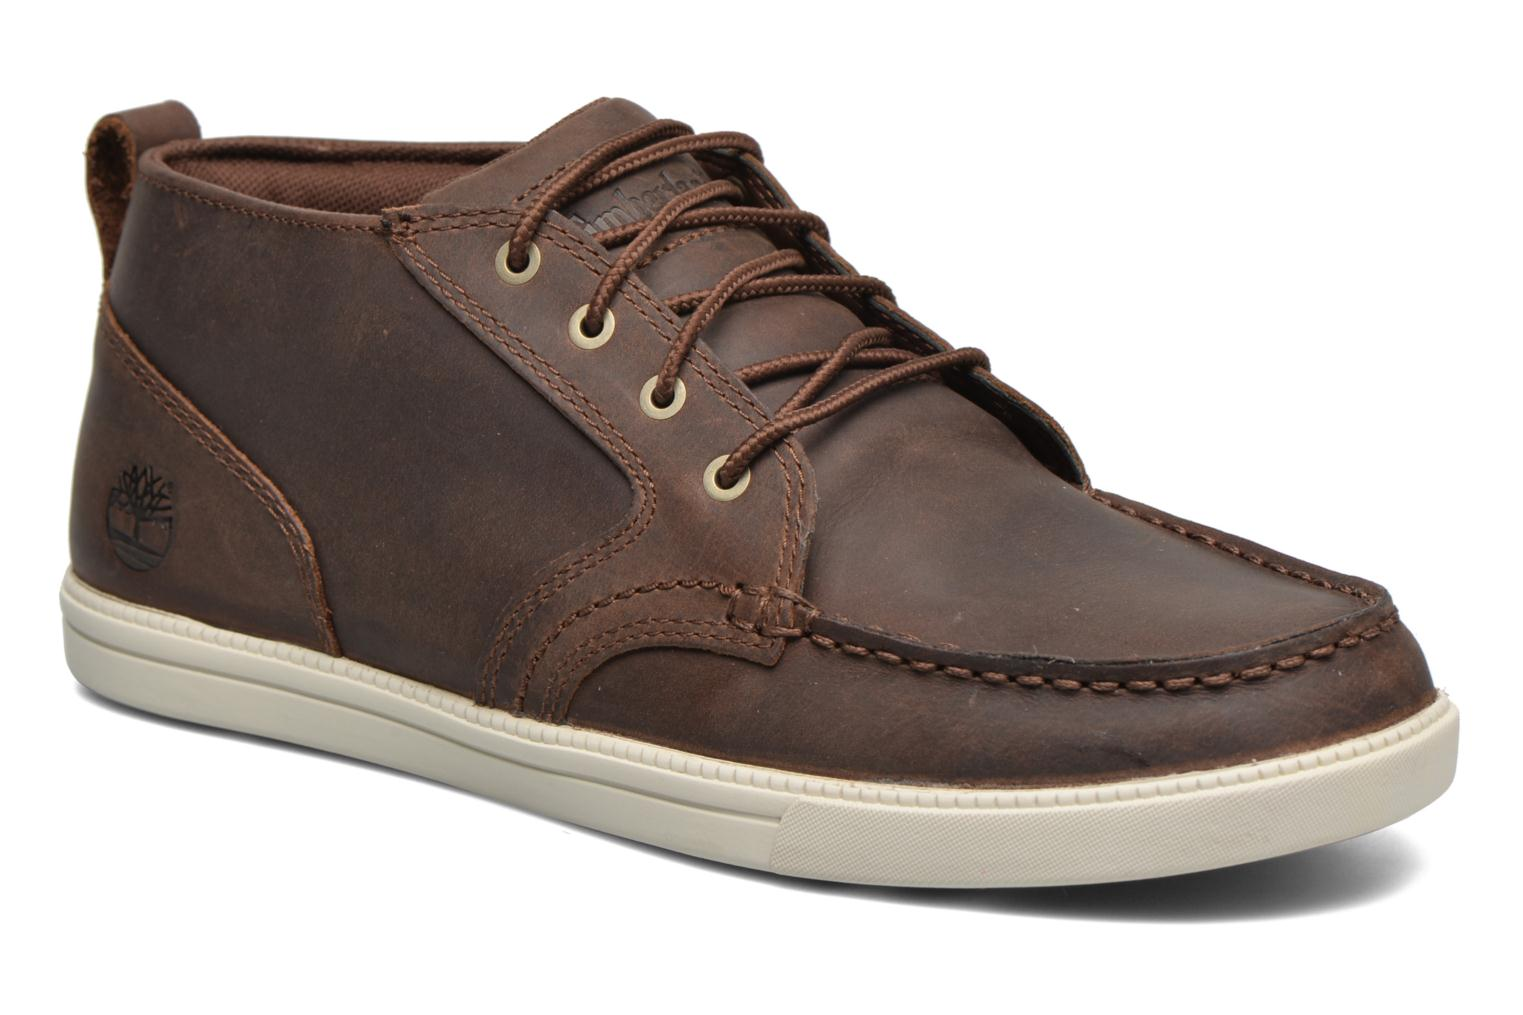 Earthkeepers Fulk LP Chukka Moc Toe Lea Gaucho Saddleback Full Grain